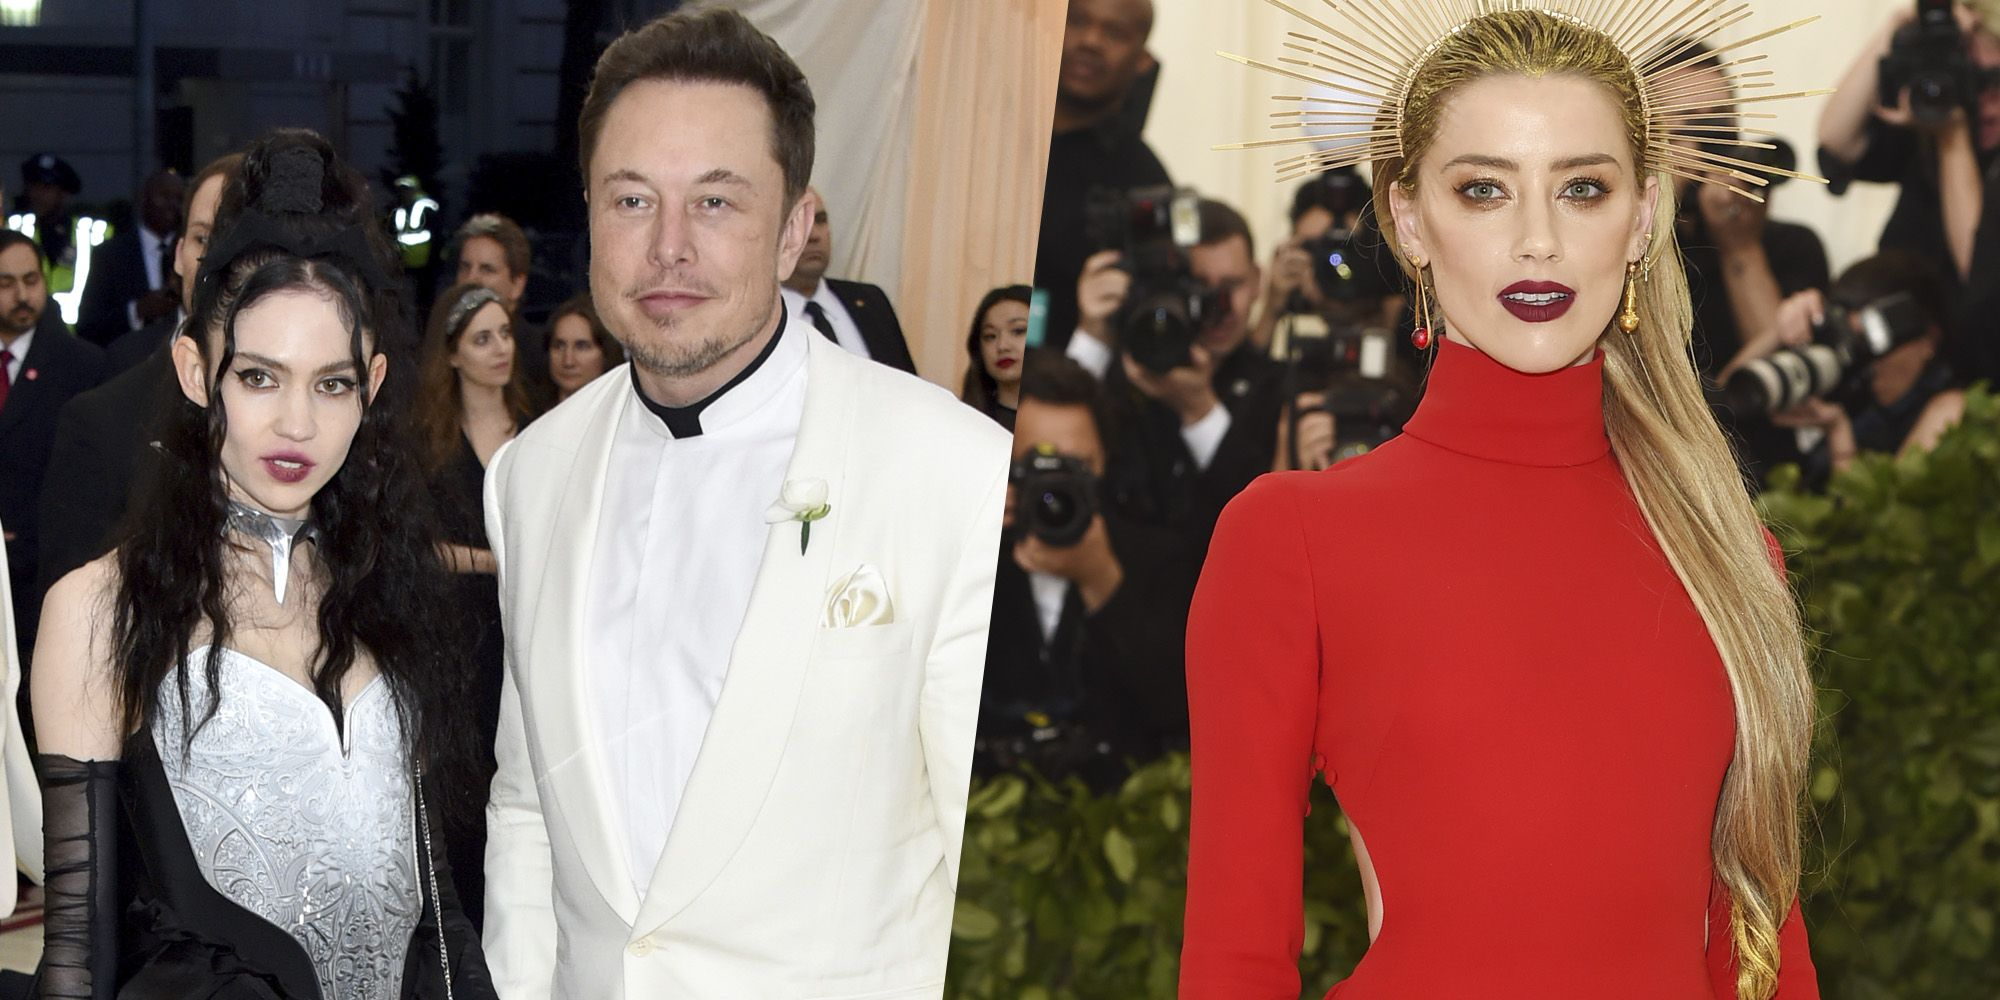 Who is elon musk dating today